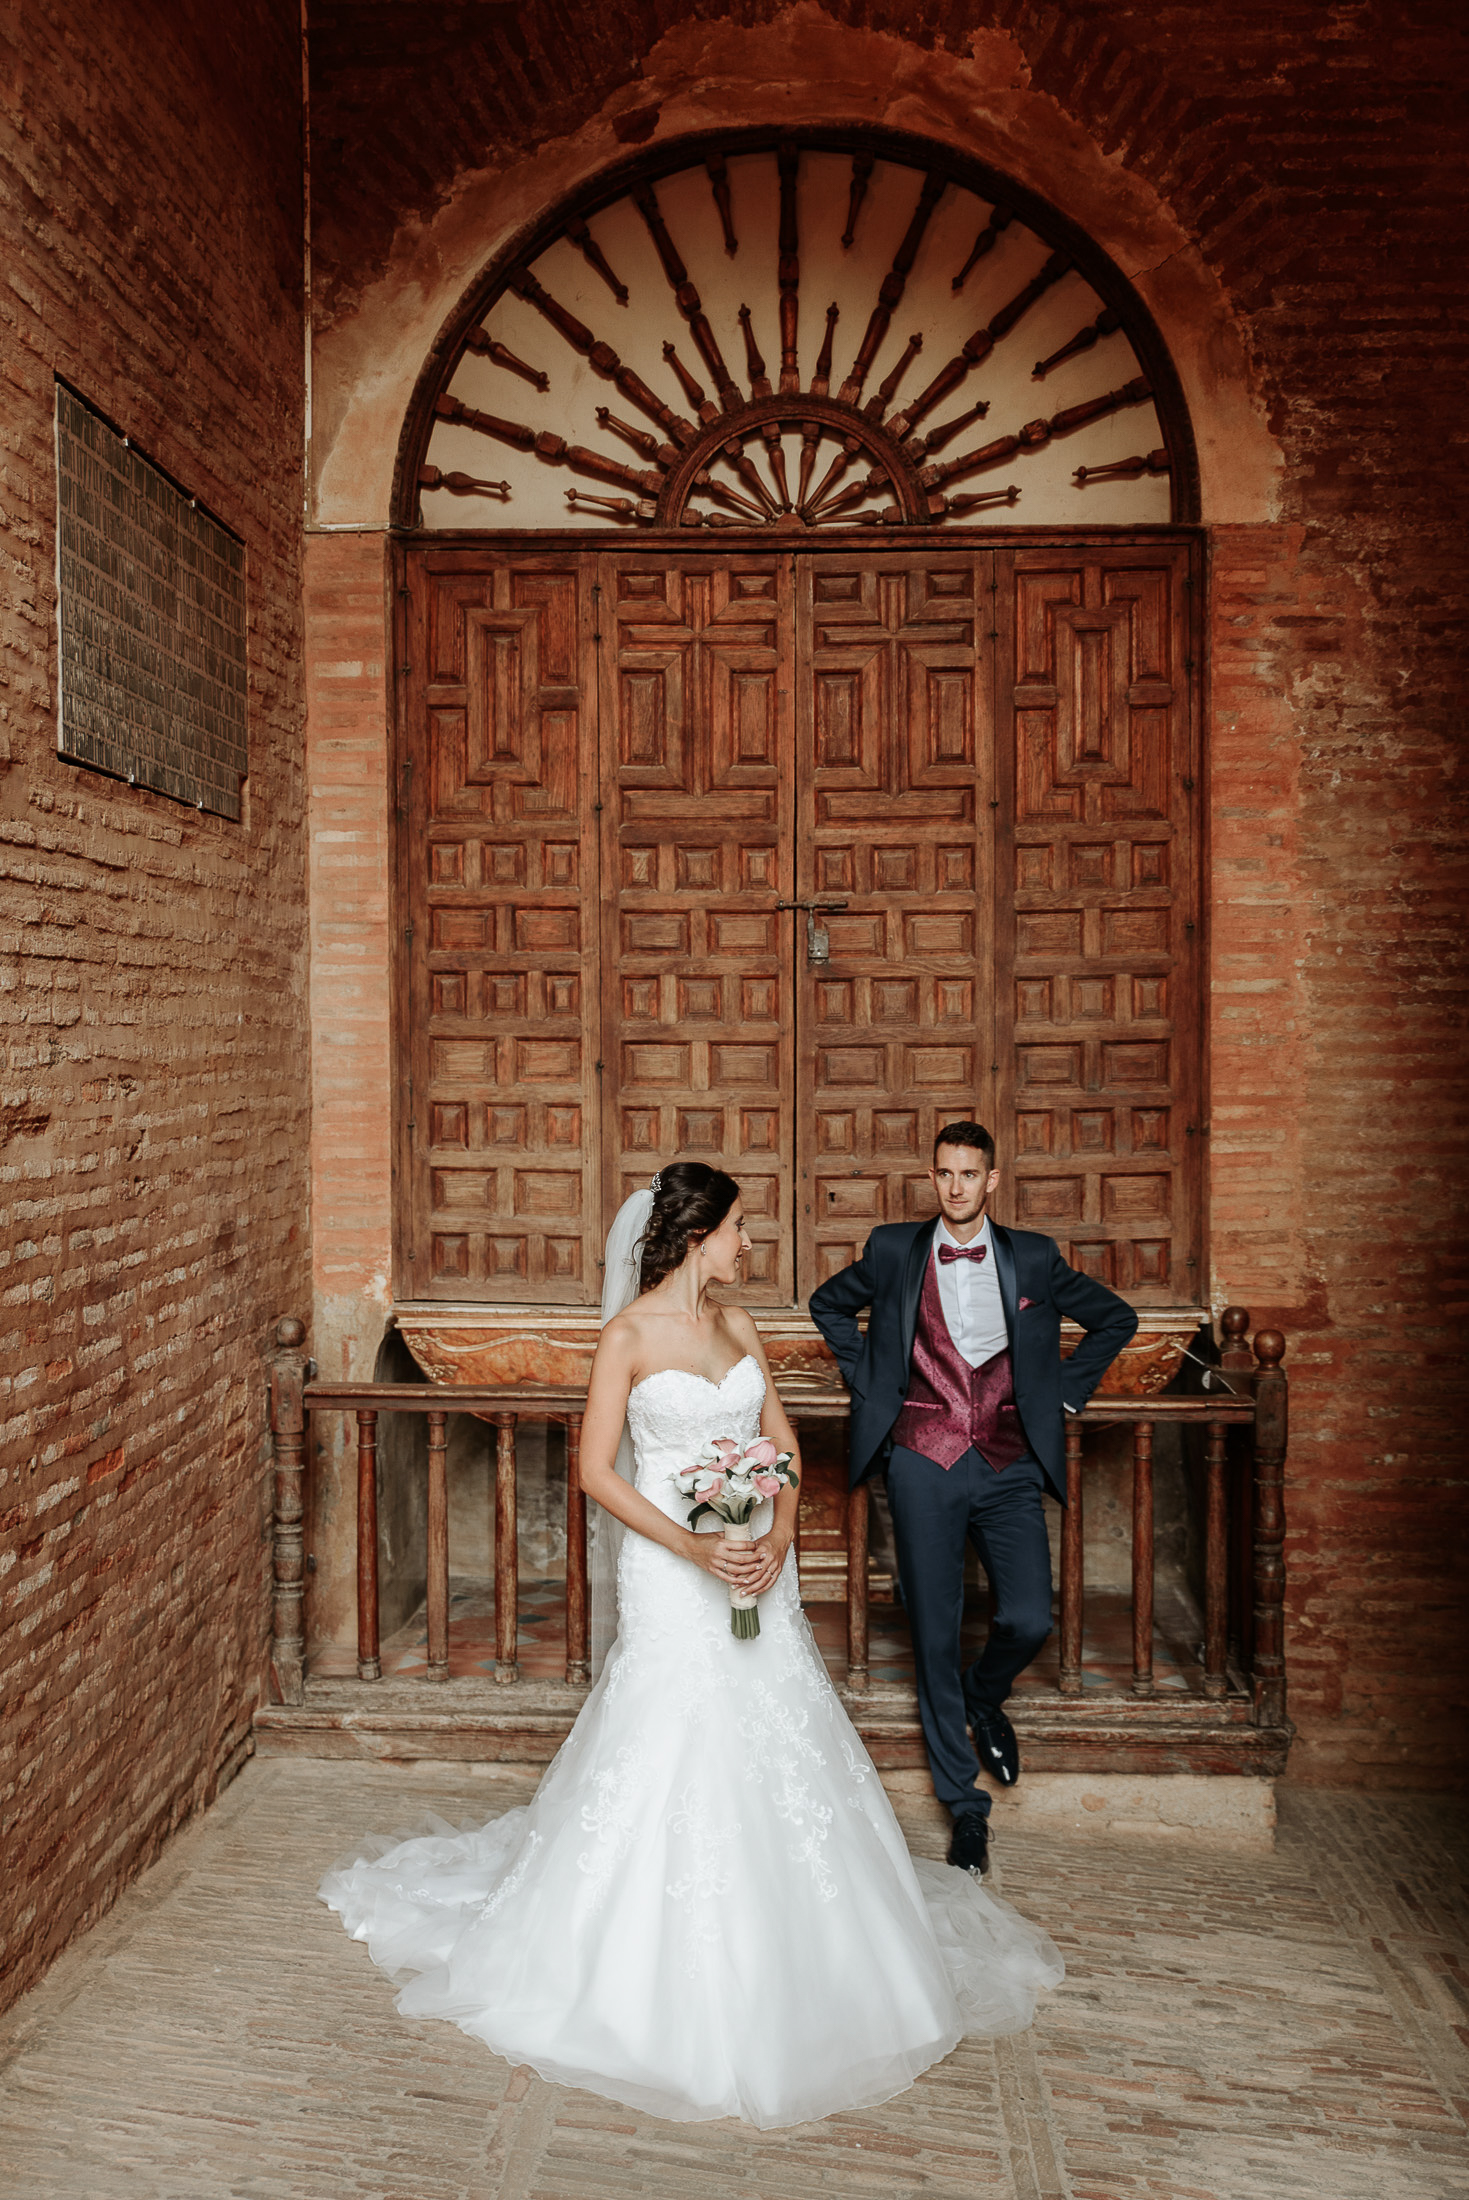 Gate of Justice, Wedding in Alhambra